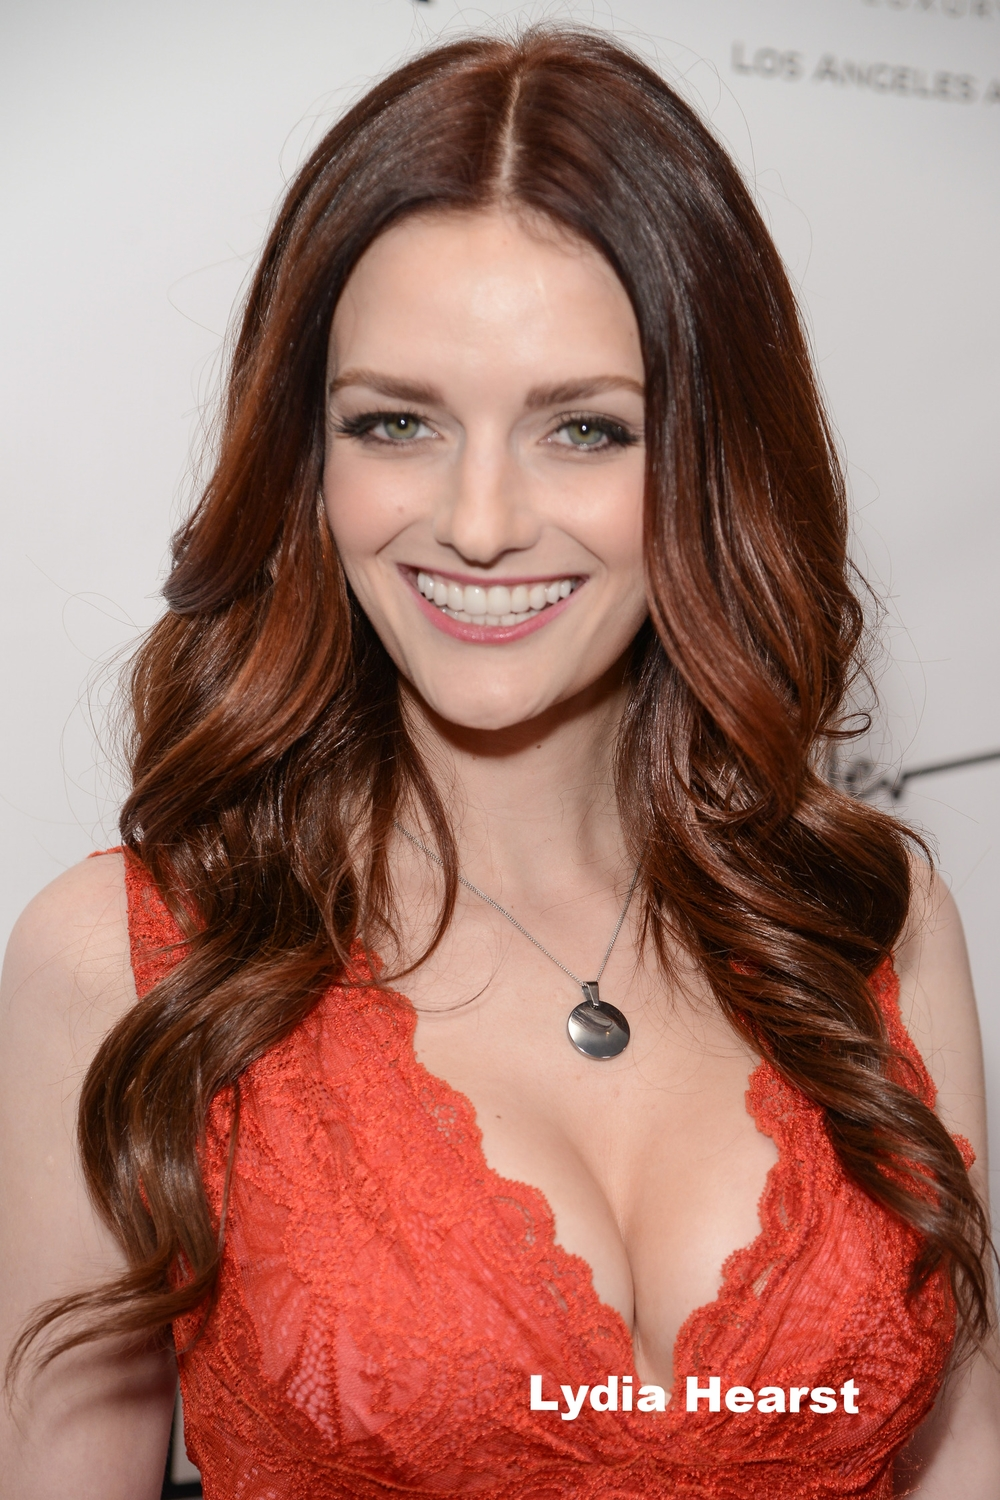 lydia hearst heightlydia hearst tyler shields, lydia hearst wedding, lydia hearst 2016, lydia hearst benedict cumberbatch, lydia hearst height, lydia hearst vogue, lydia hearst husband, lydia hearst listal, lydia hearst instagram, lydia hearst, lydia hearst net worth, lydia hearst blog, lydia hearst twitter, lydia hearst gossip girl, lydia hearst boyfriend, lydia hearst tumblr, lydia hearst family, lydia hearst bellazon, lydia hearst esquire, lydia hearst chris hardwick